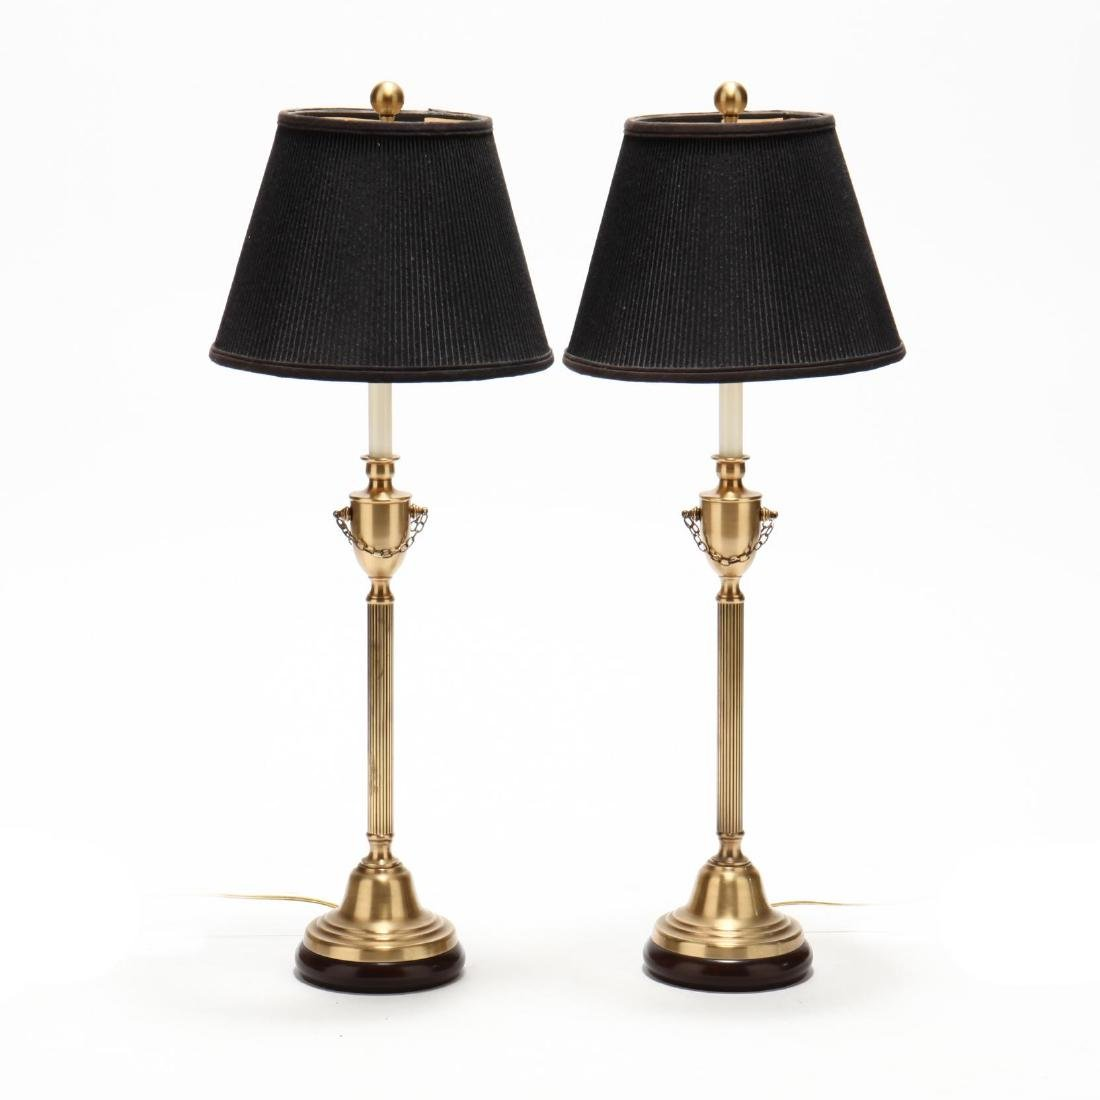 Pair of Neoclassical Style Brass Table Lamps